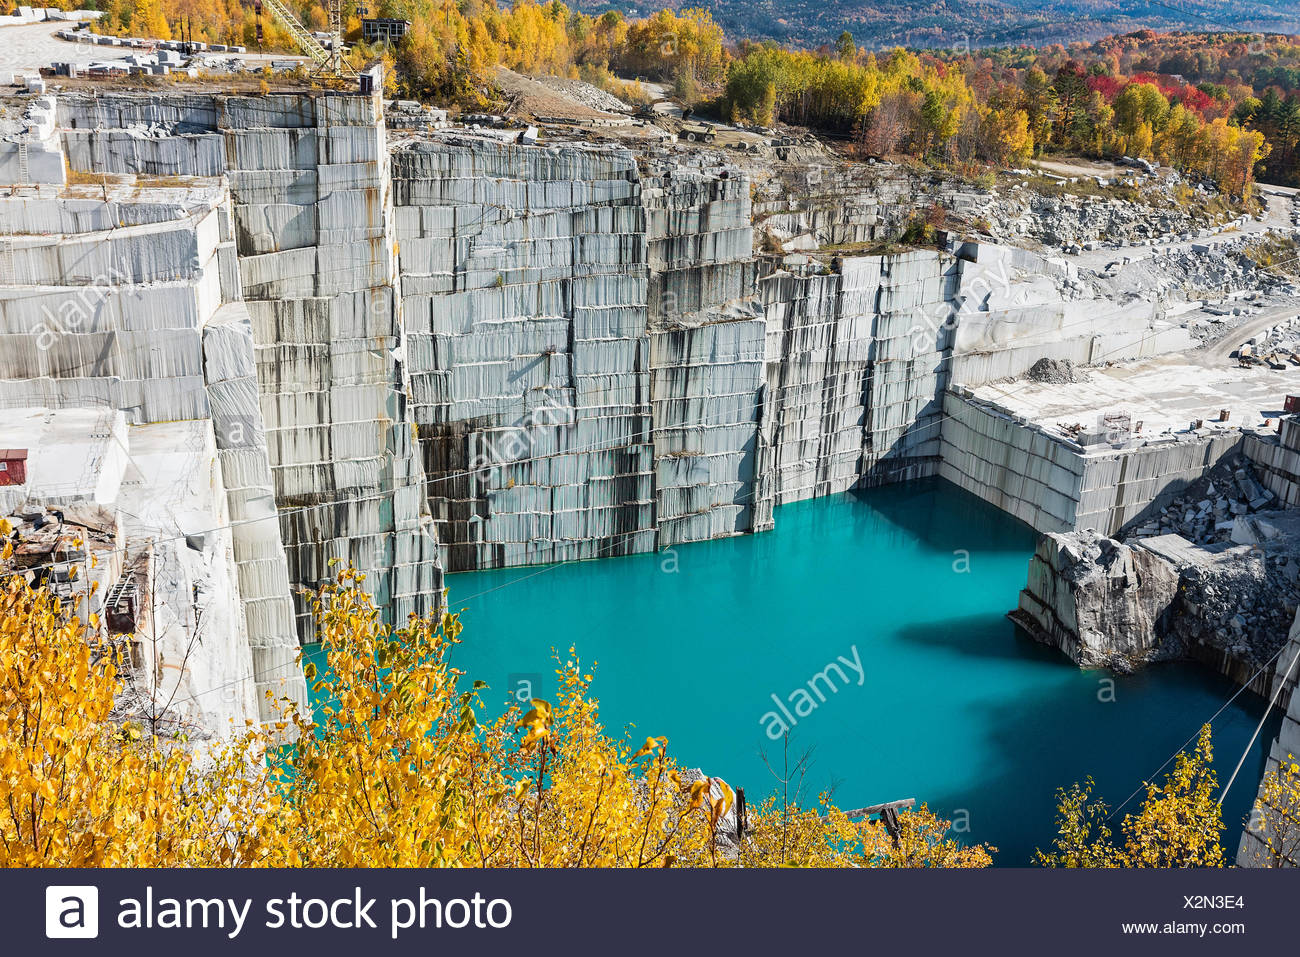 Vermont Quarry Stock Photos & Vermont Quarry Stock Images